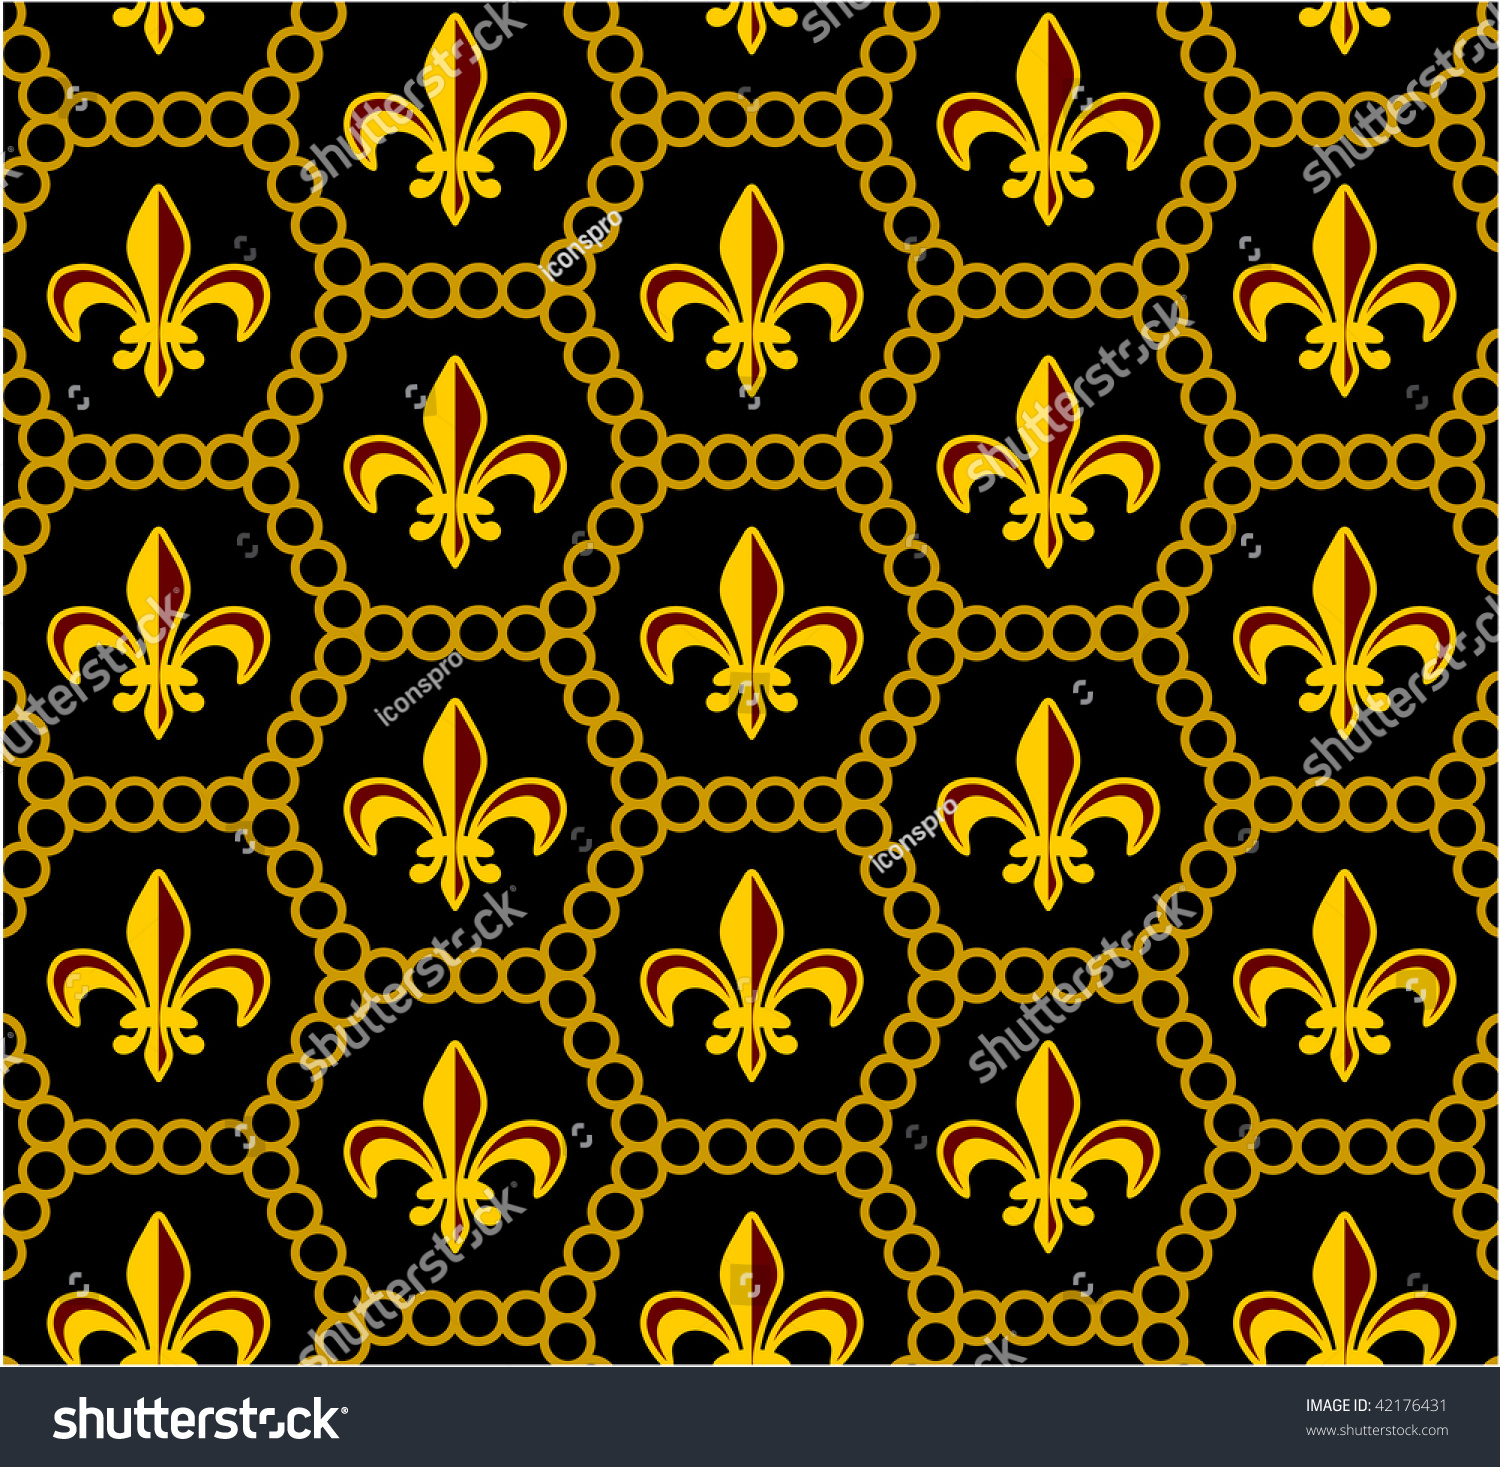 fleur de lis design pattern stock vector illustration 42176431 shutterstock. Black Bedroom Furniture Sets. Home Design Ideas